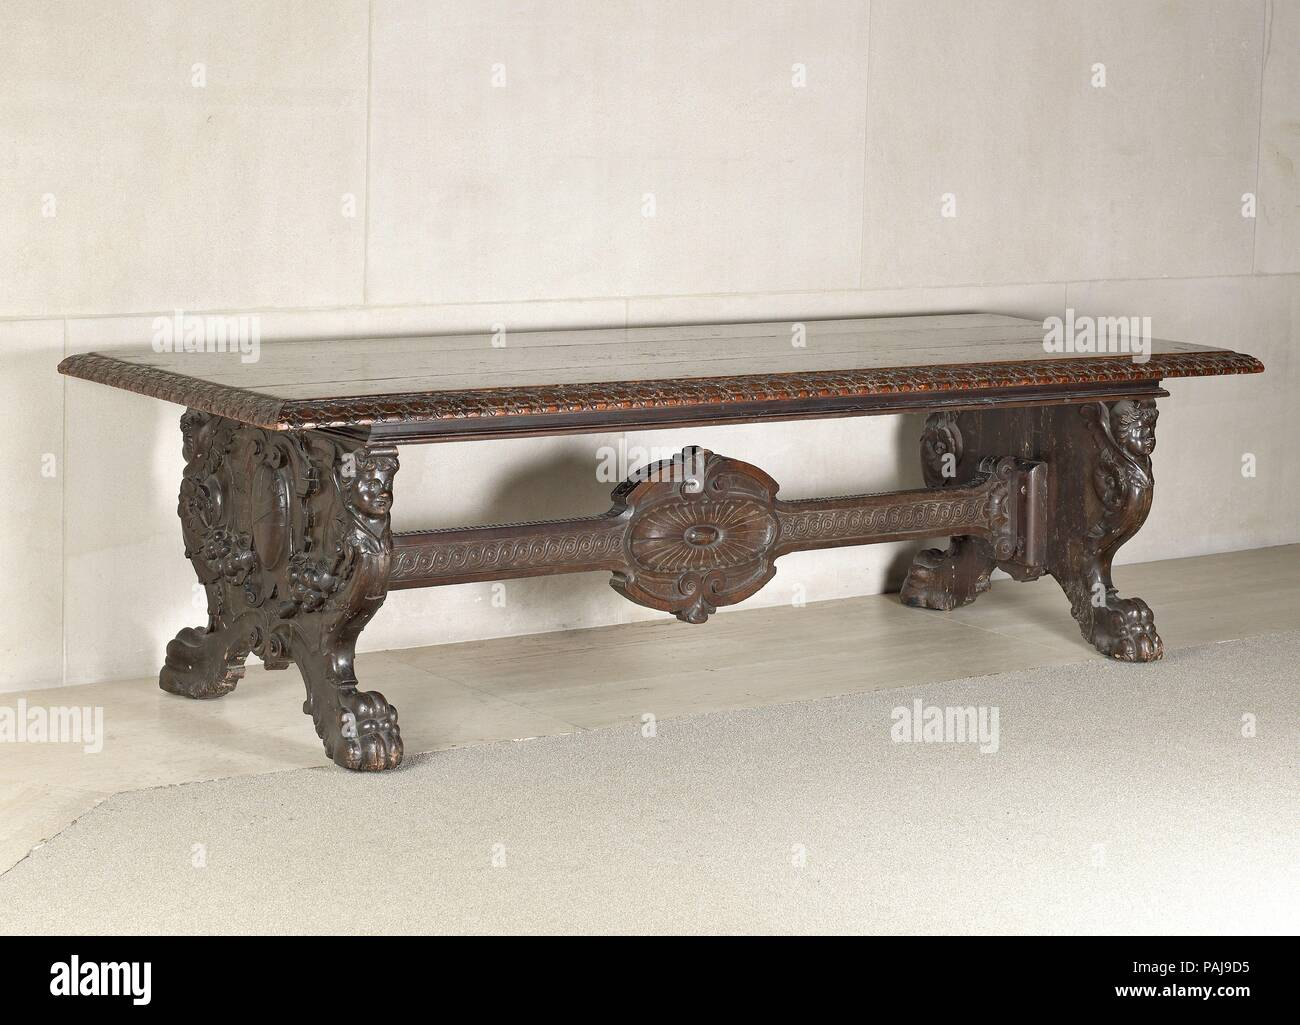 Center Table Culture Italian Dimensions H 762 Cm W 2796 Cm